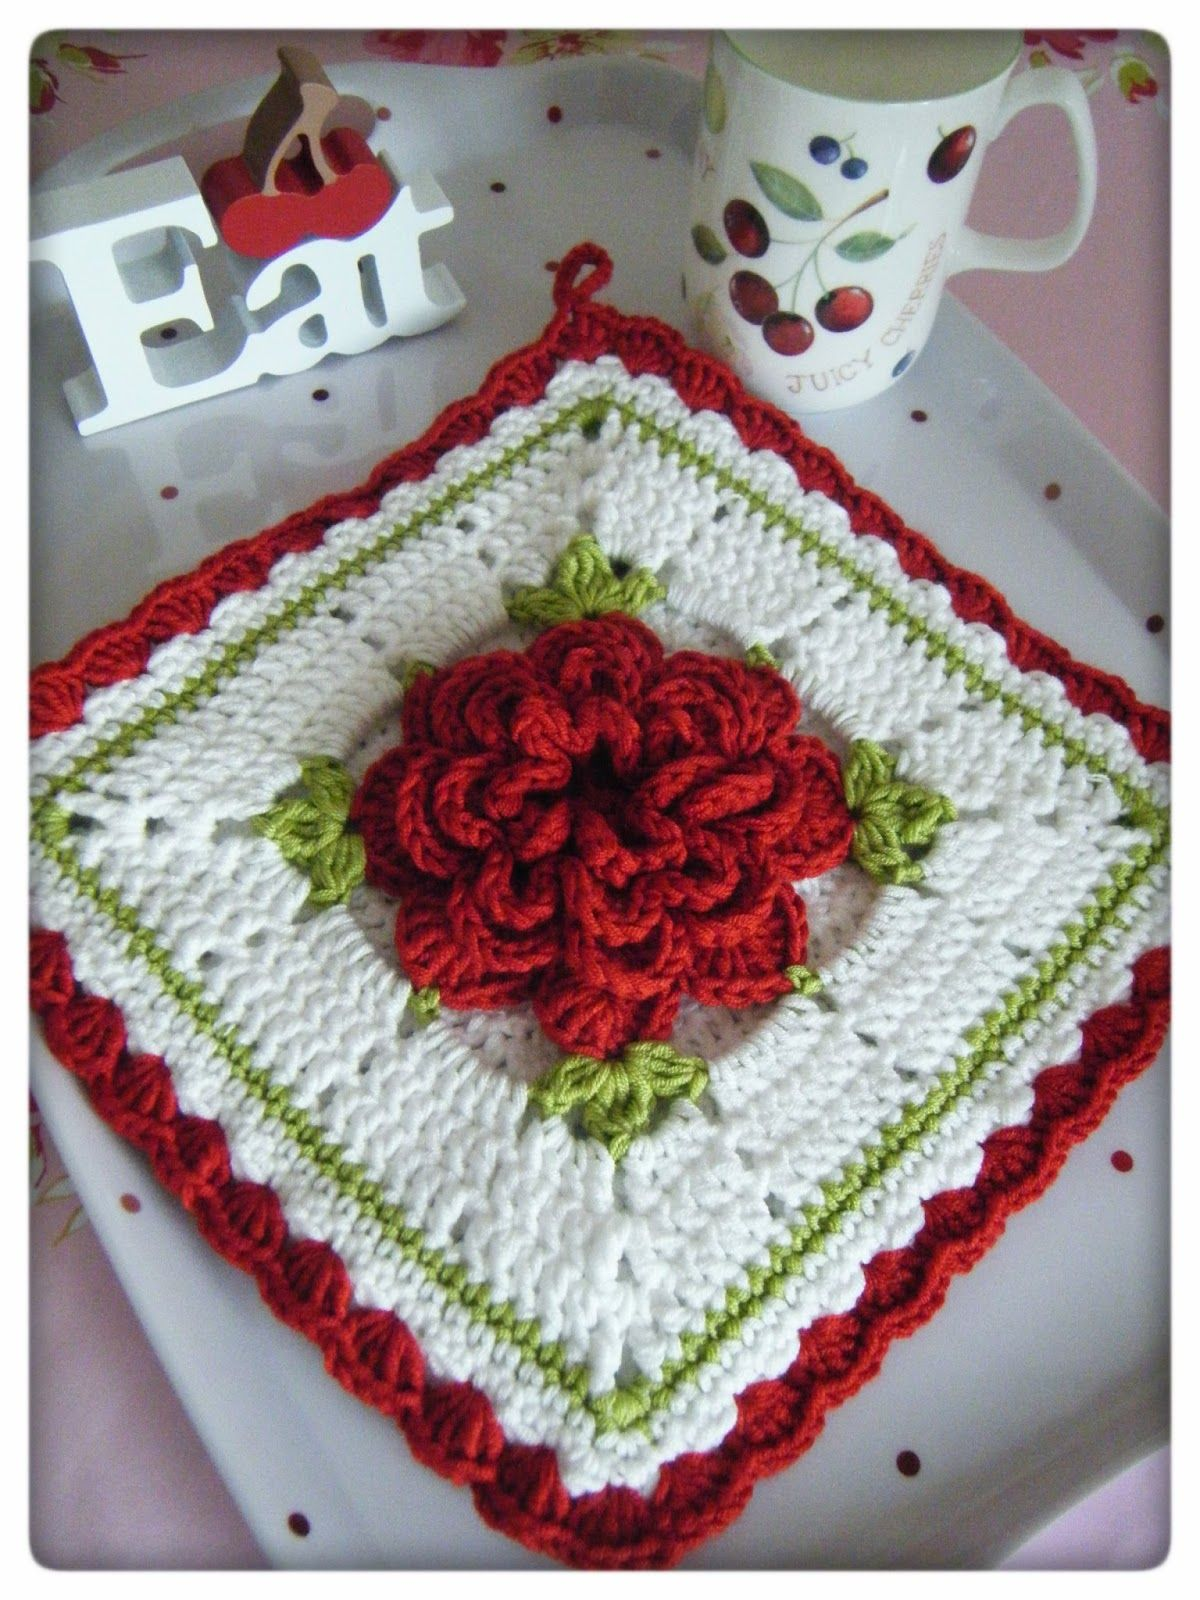 Betsy Makes ....: Crochet Gifts                   She used the flower pot holder pattern I also pinned, but with adaptions.